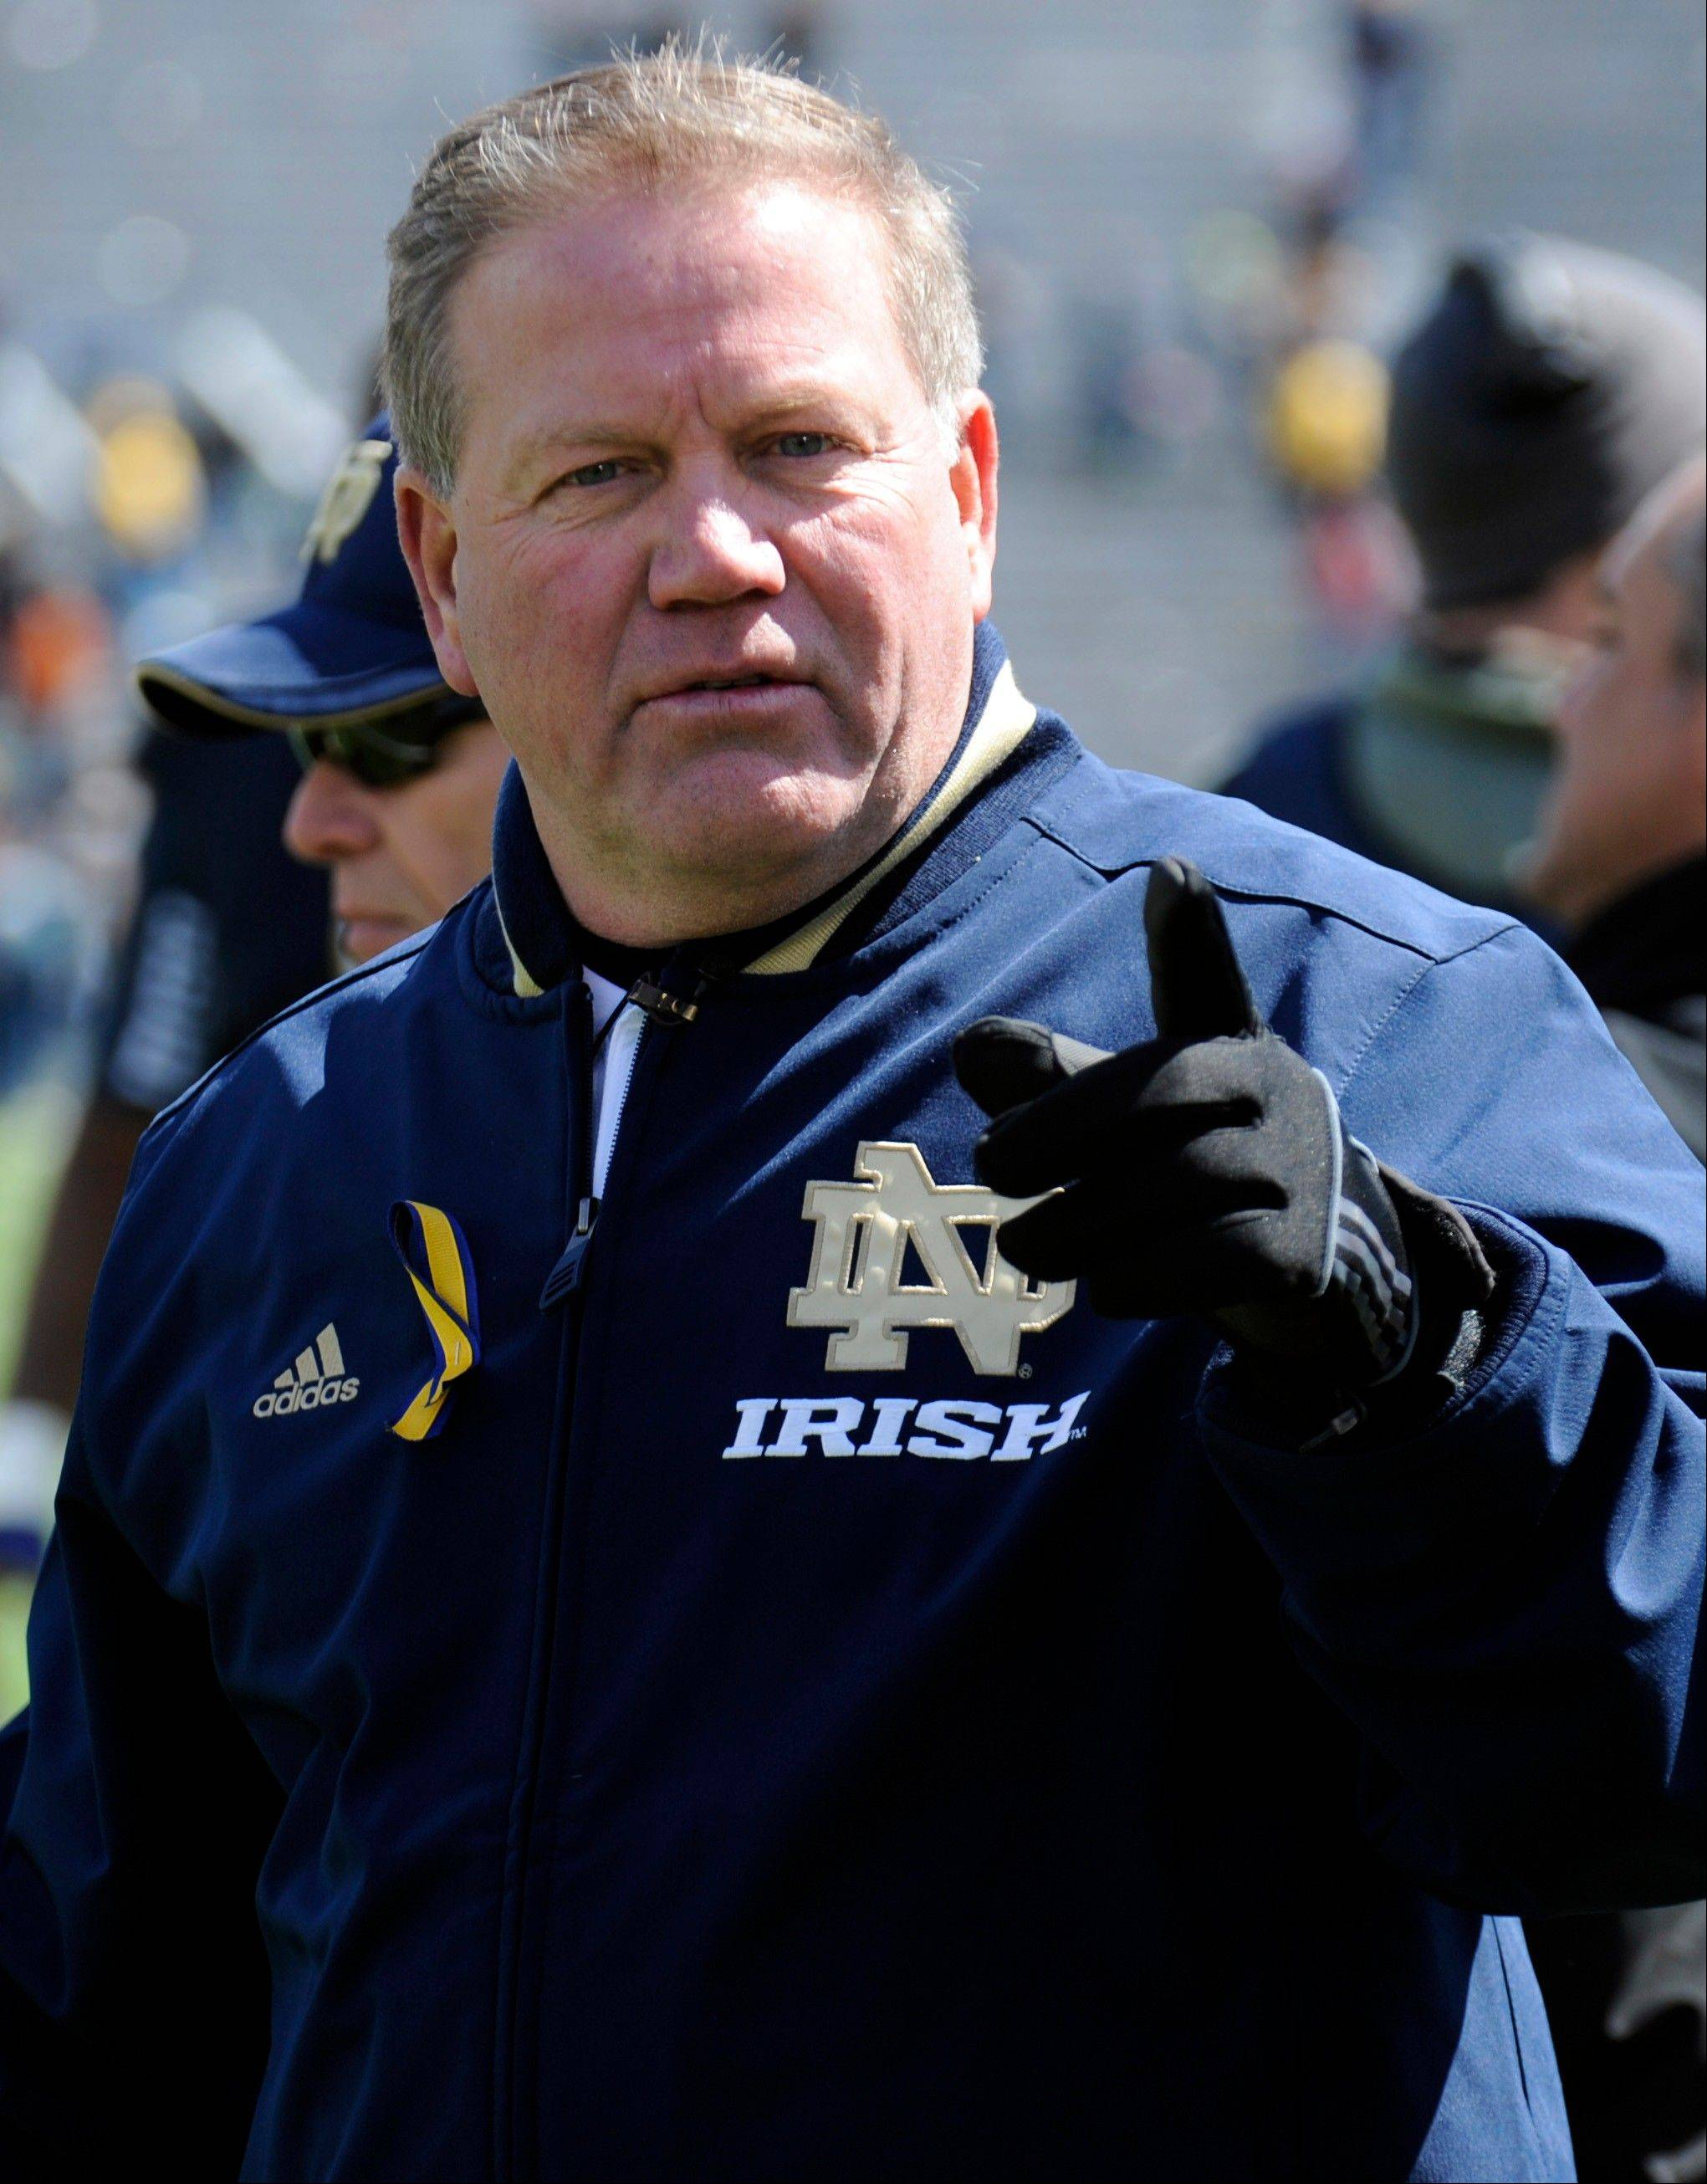 Notre Dame coach Brian Kelly heads off the field after the Blue-Gold spring game in South Bend, Ind. Kelly thinks the Irish's recent problems are behind them.